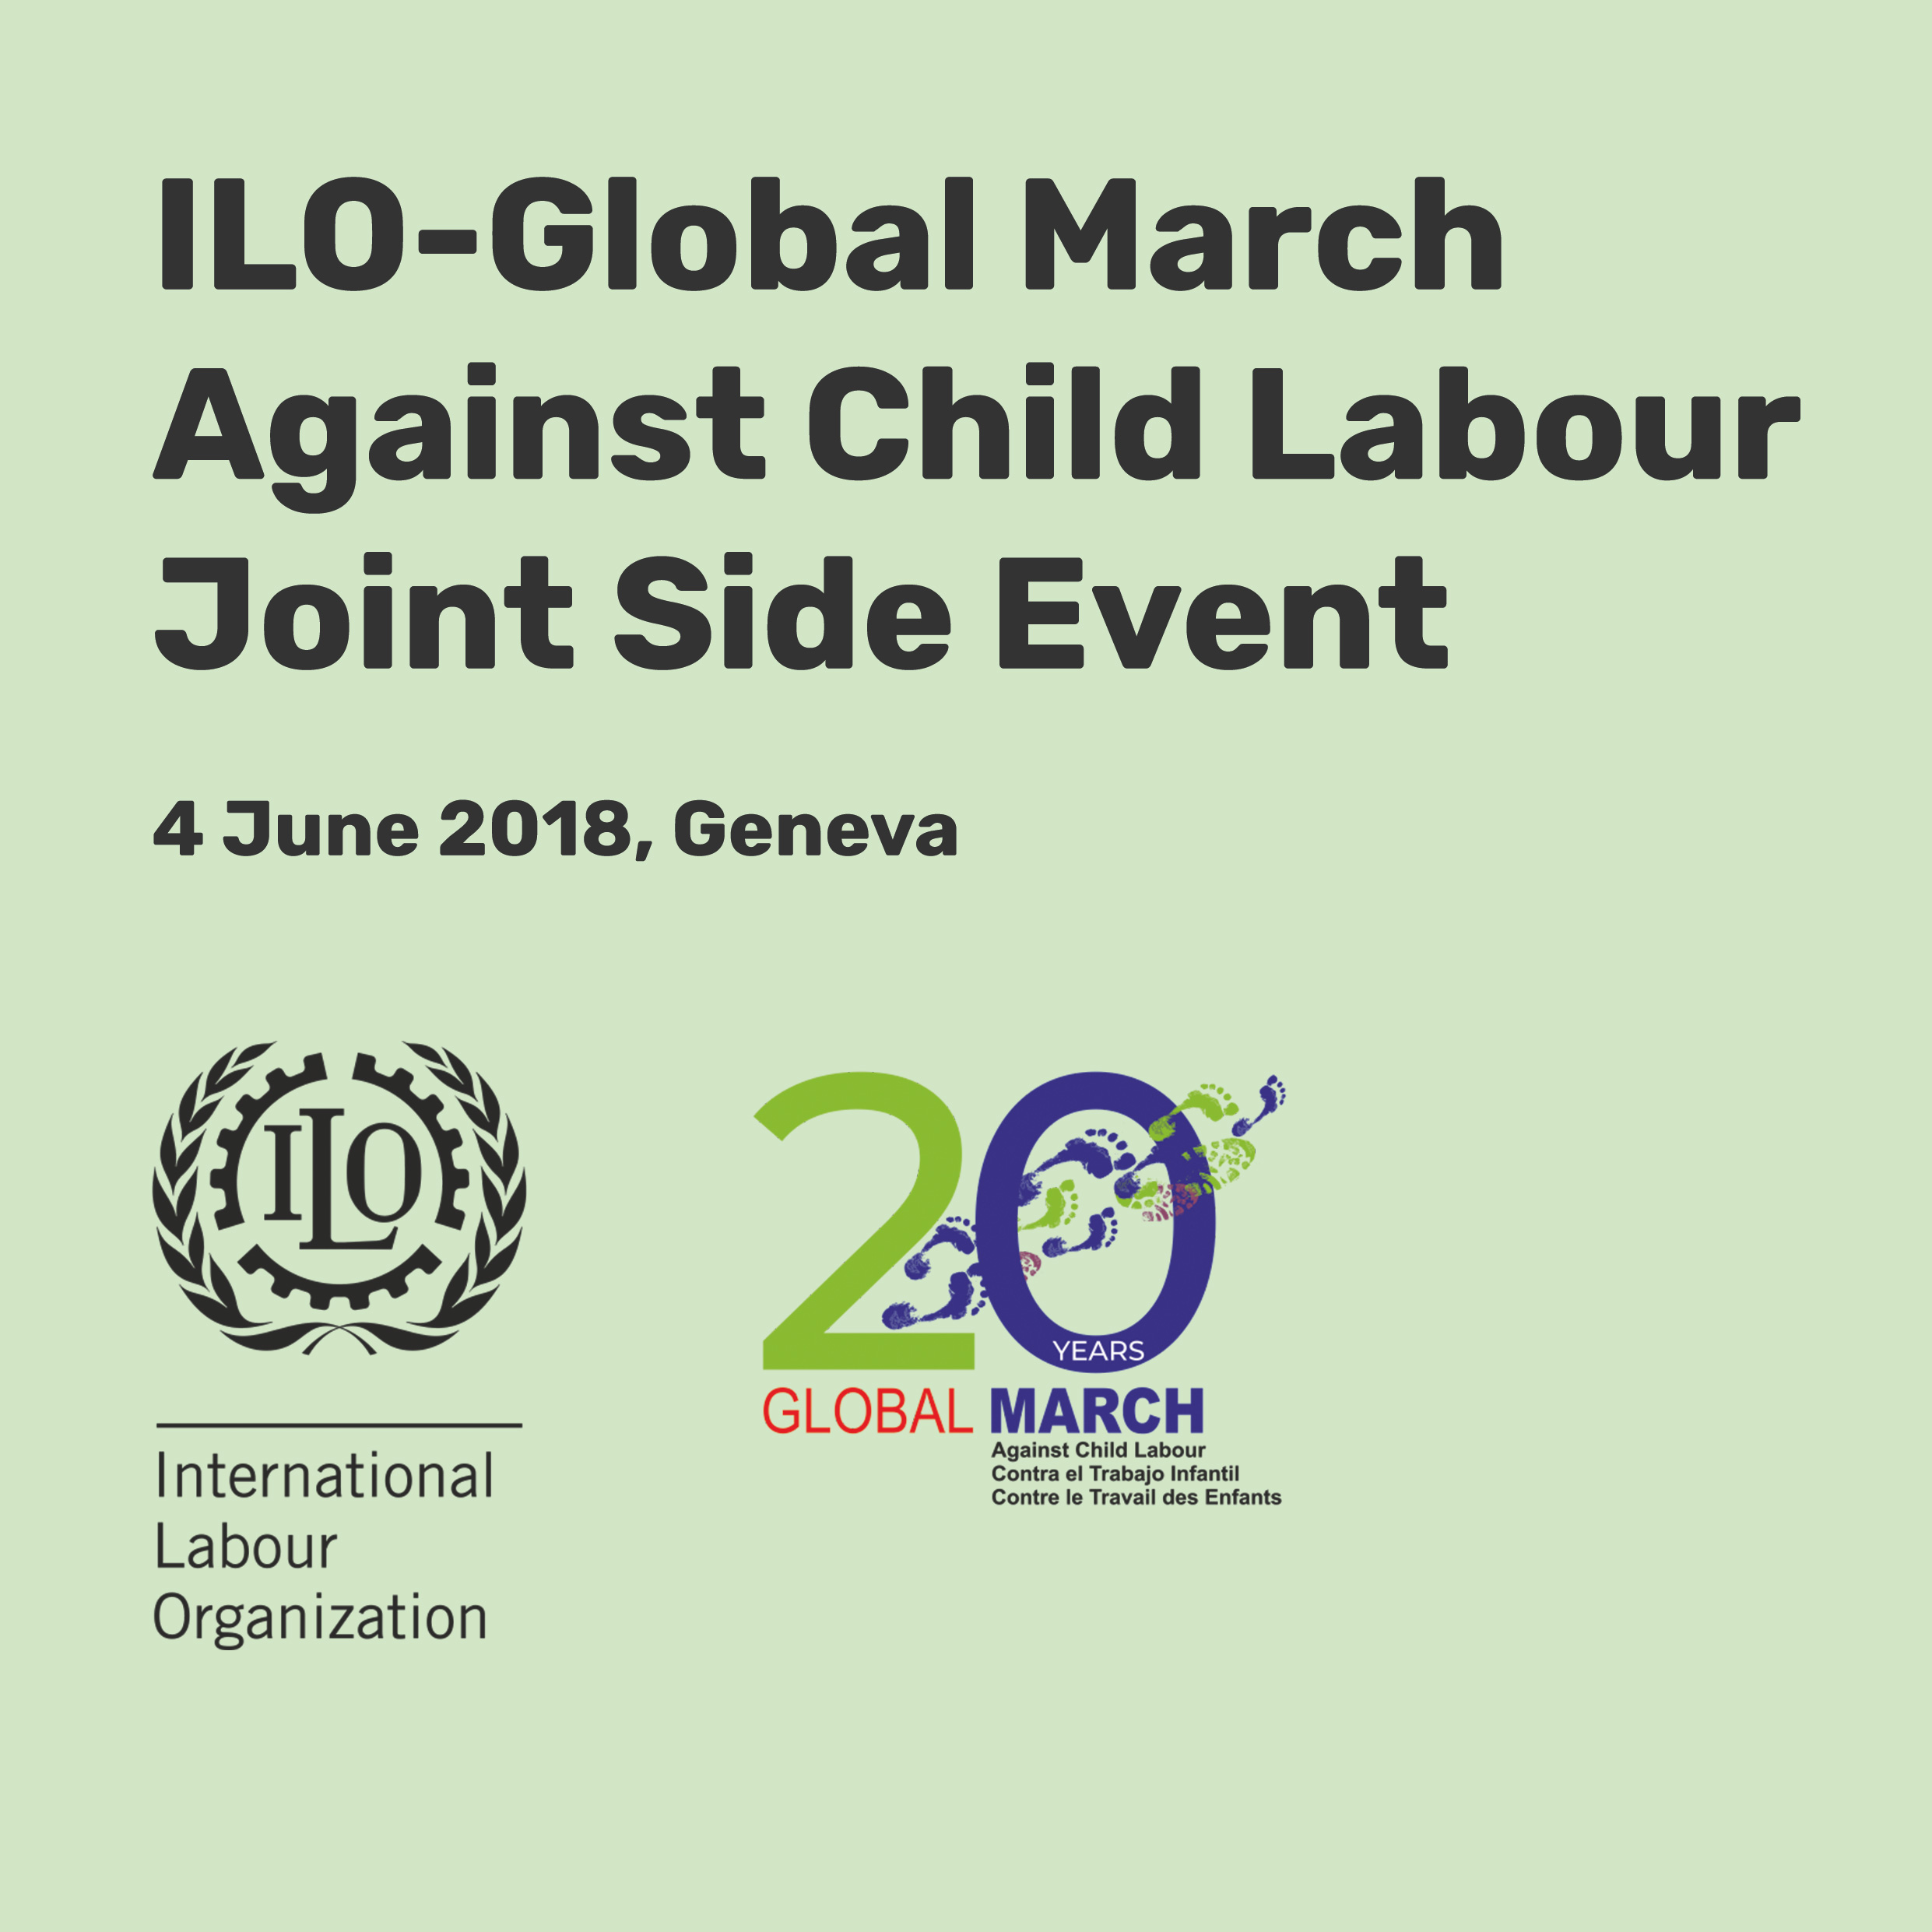 ILO-Global March Against Child Labour  Joint Side Event